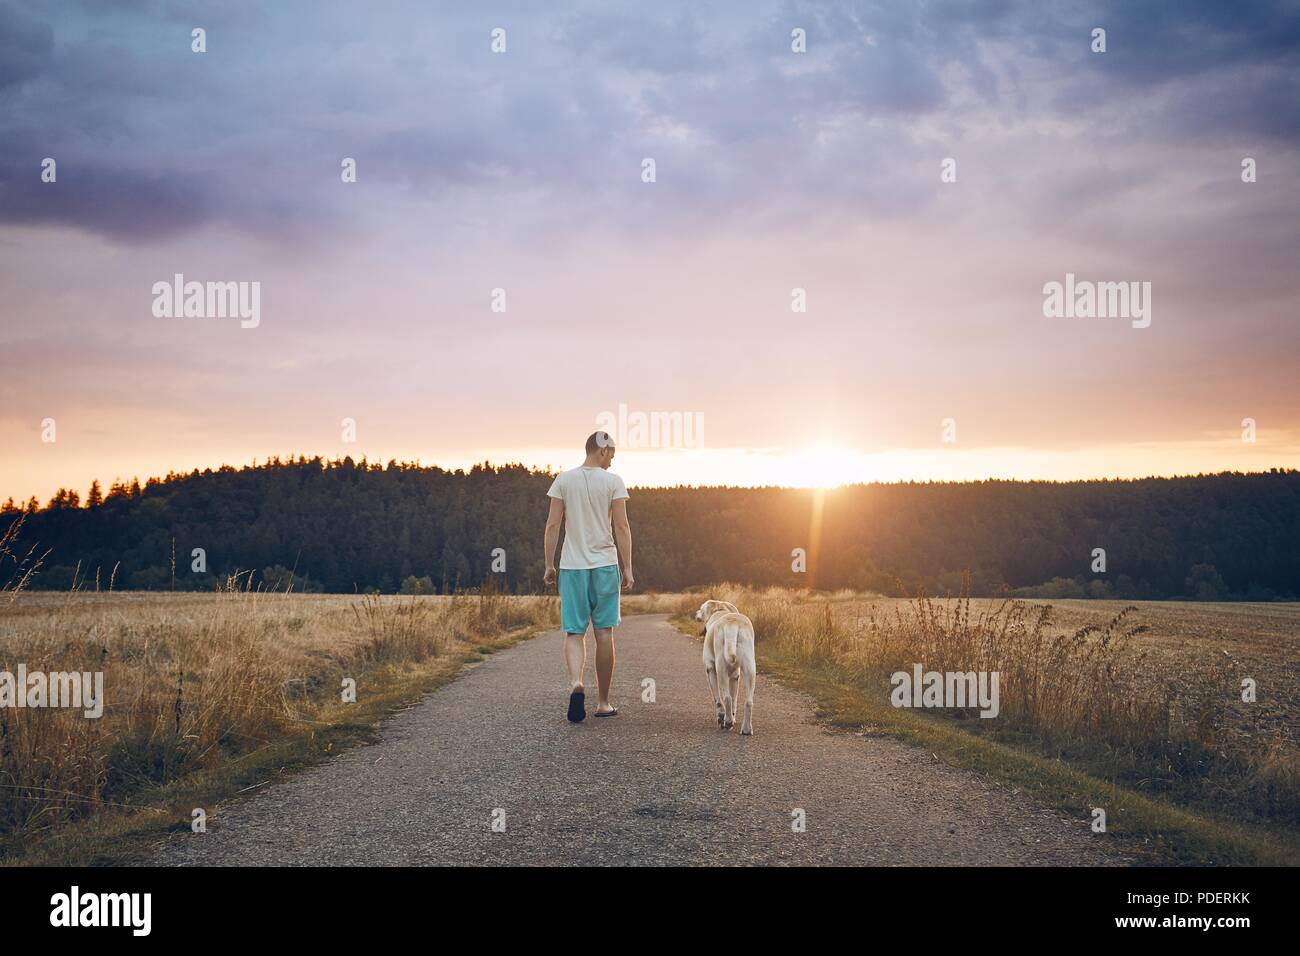 Rear view of the young man walking with his dog (labrador retriever) on the rural road at sunset. - Stock Image